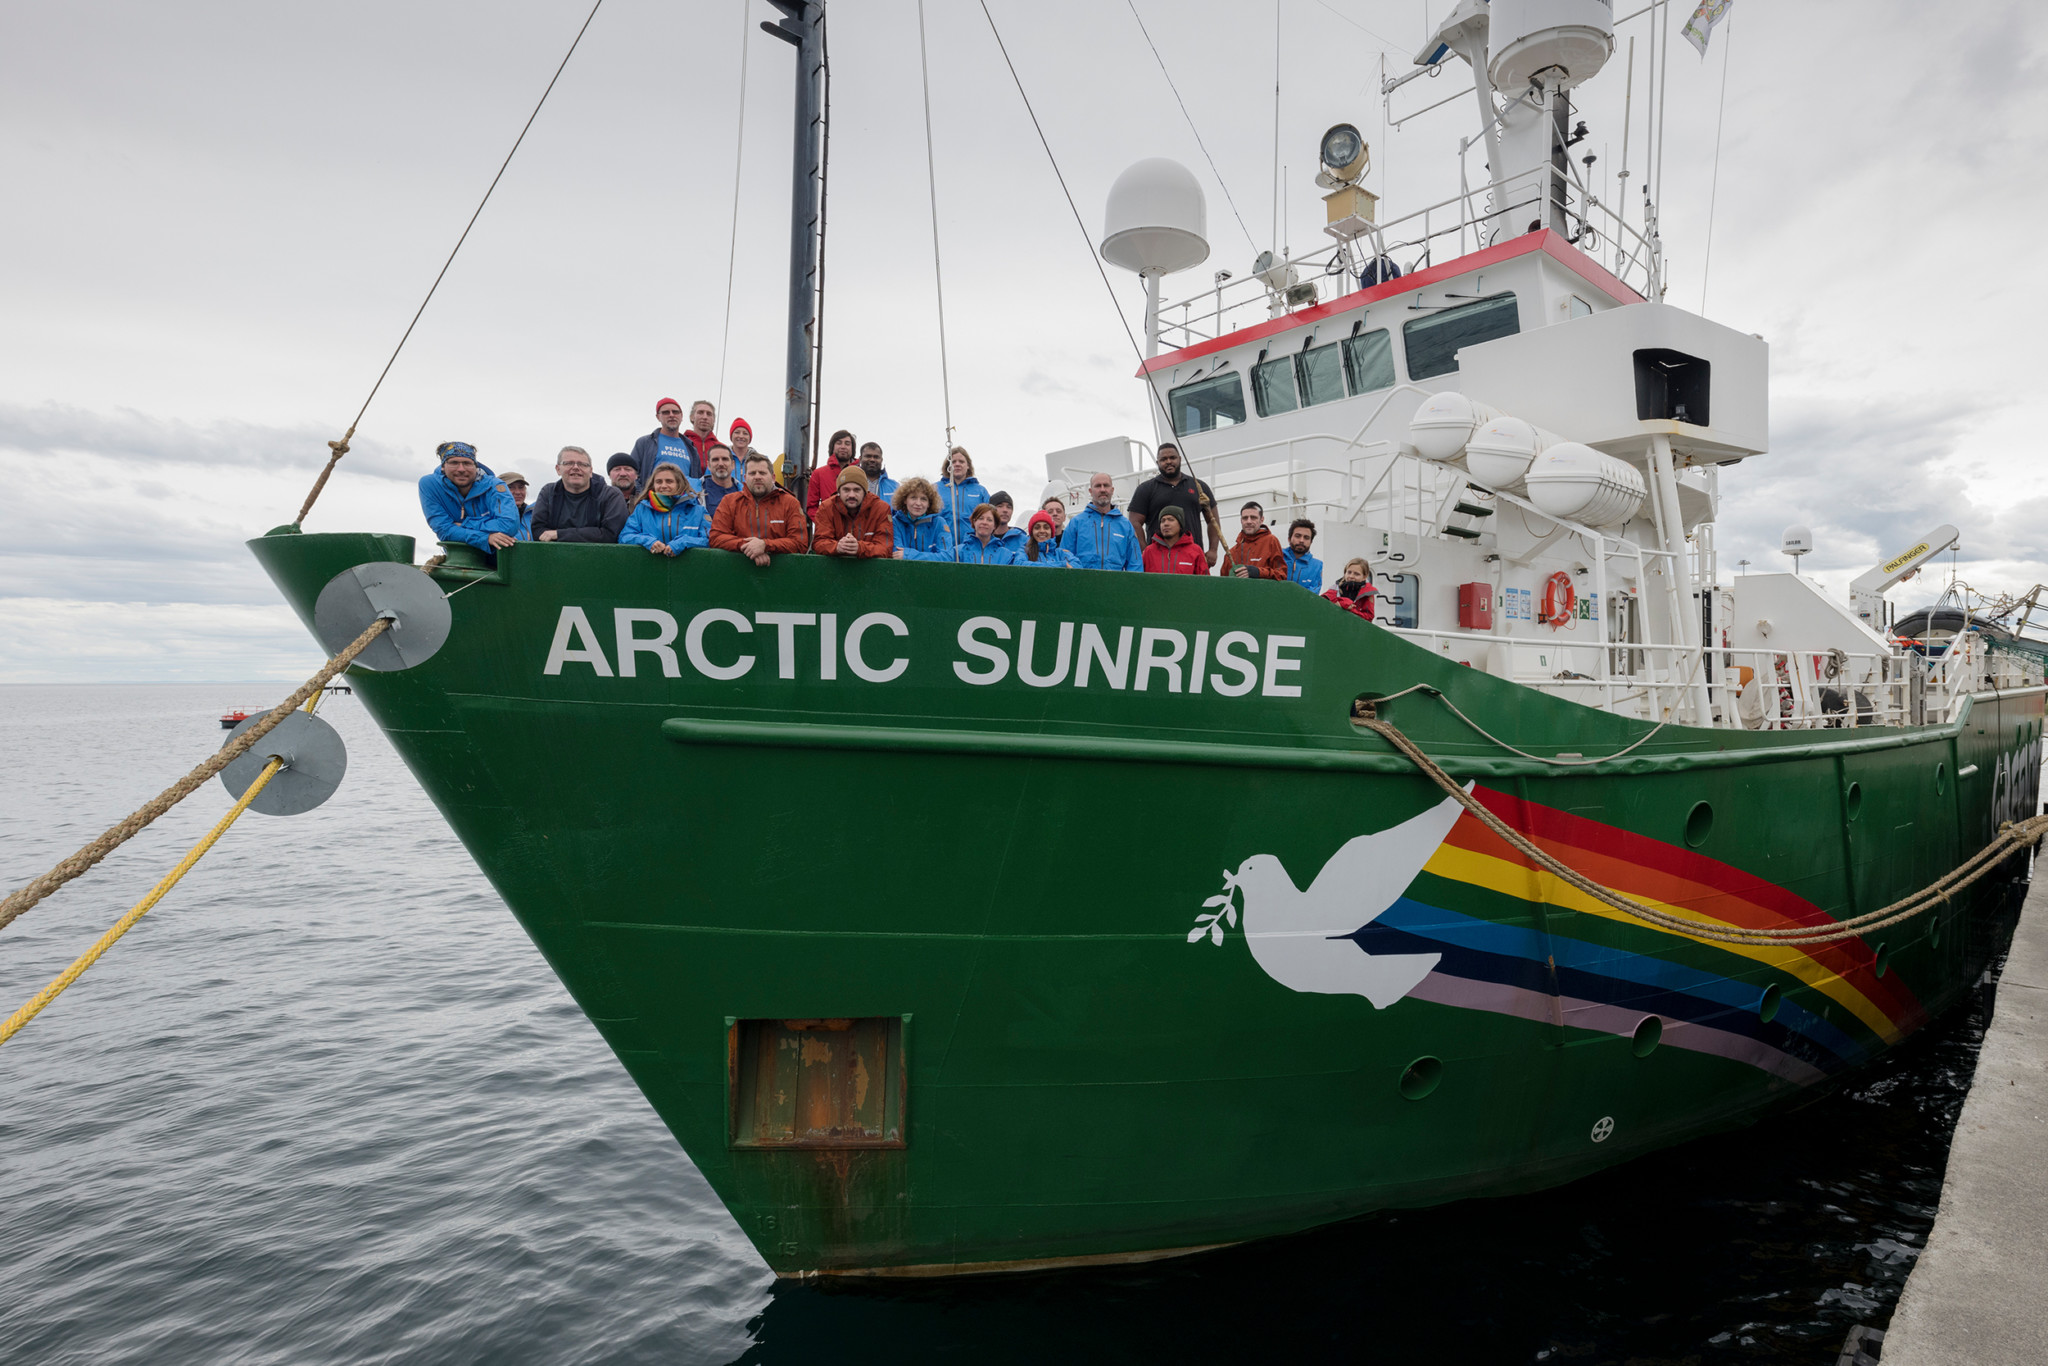 Arctic Sunrise and Crew in Chile. © Christian Åslund / Greenpeace